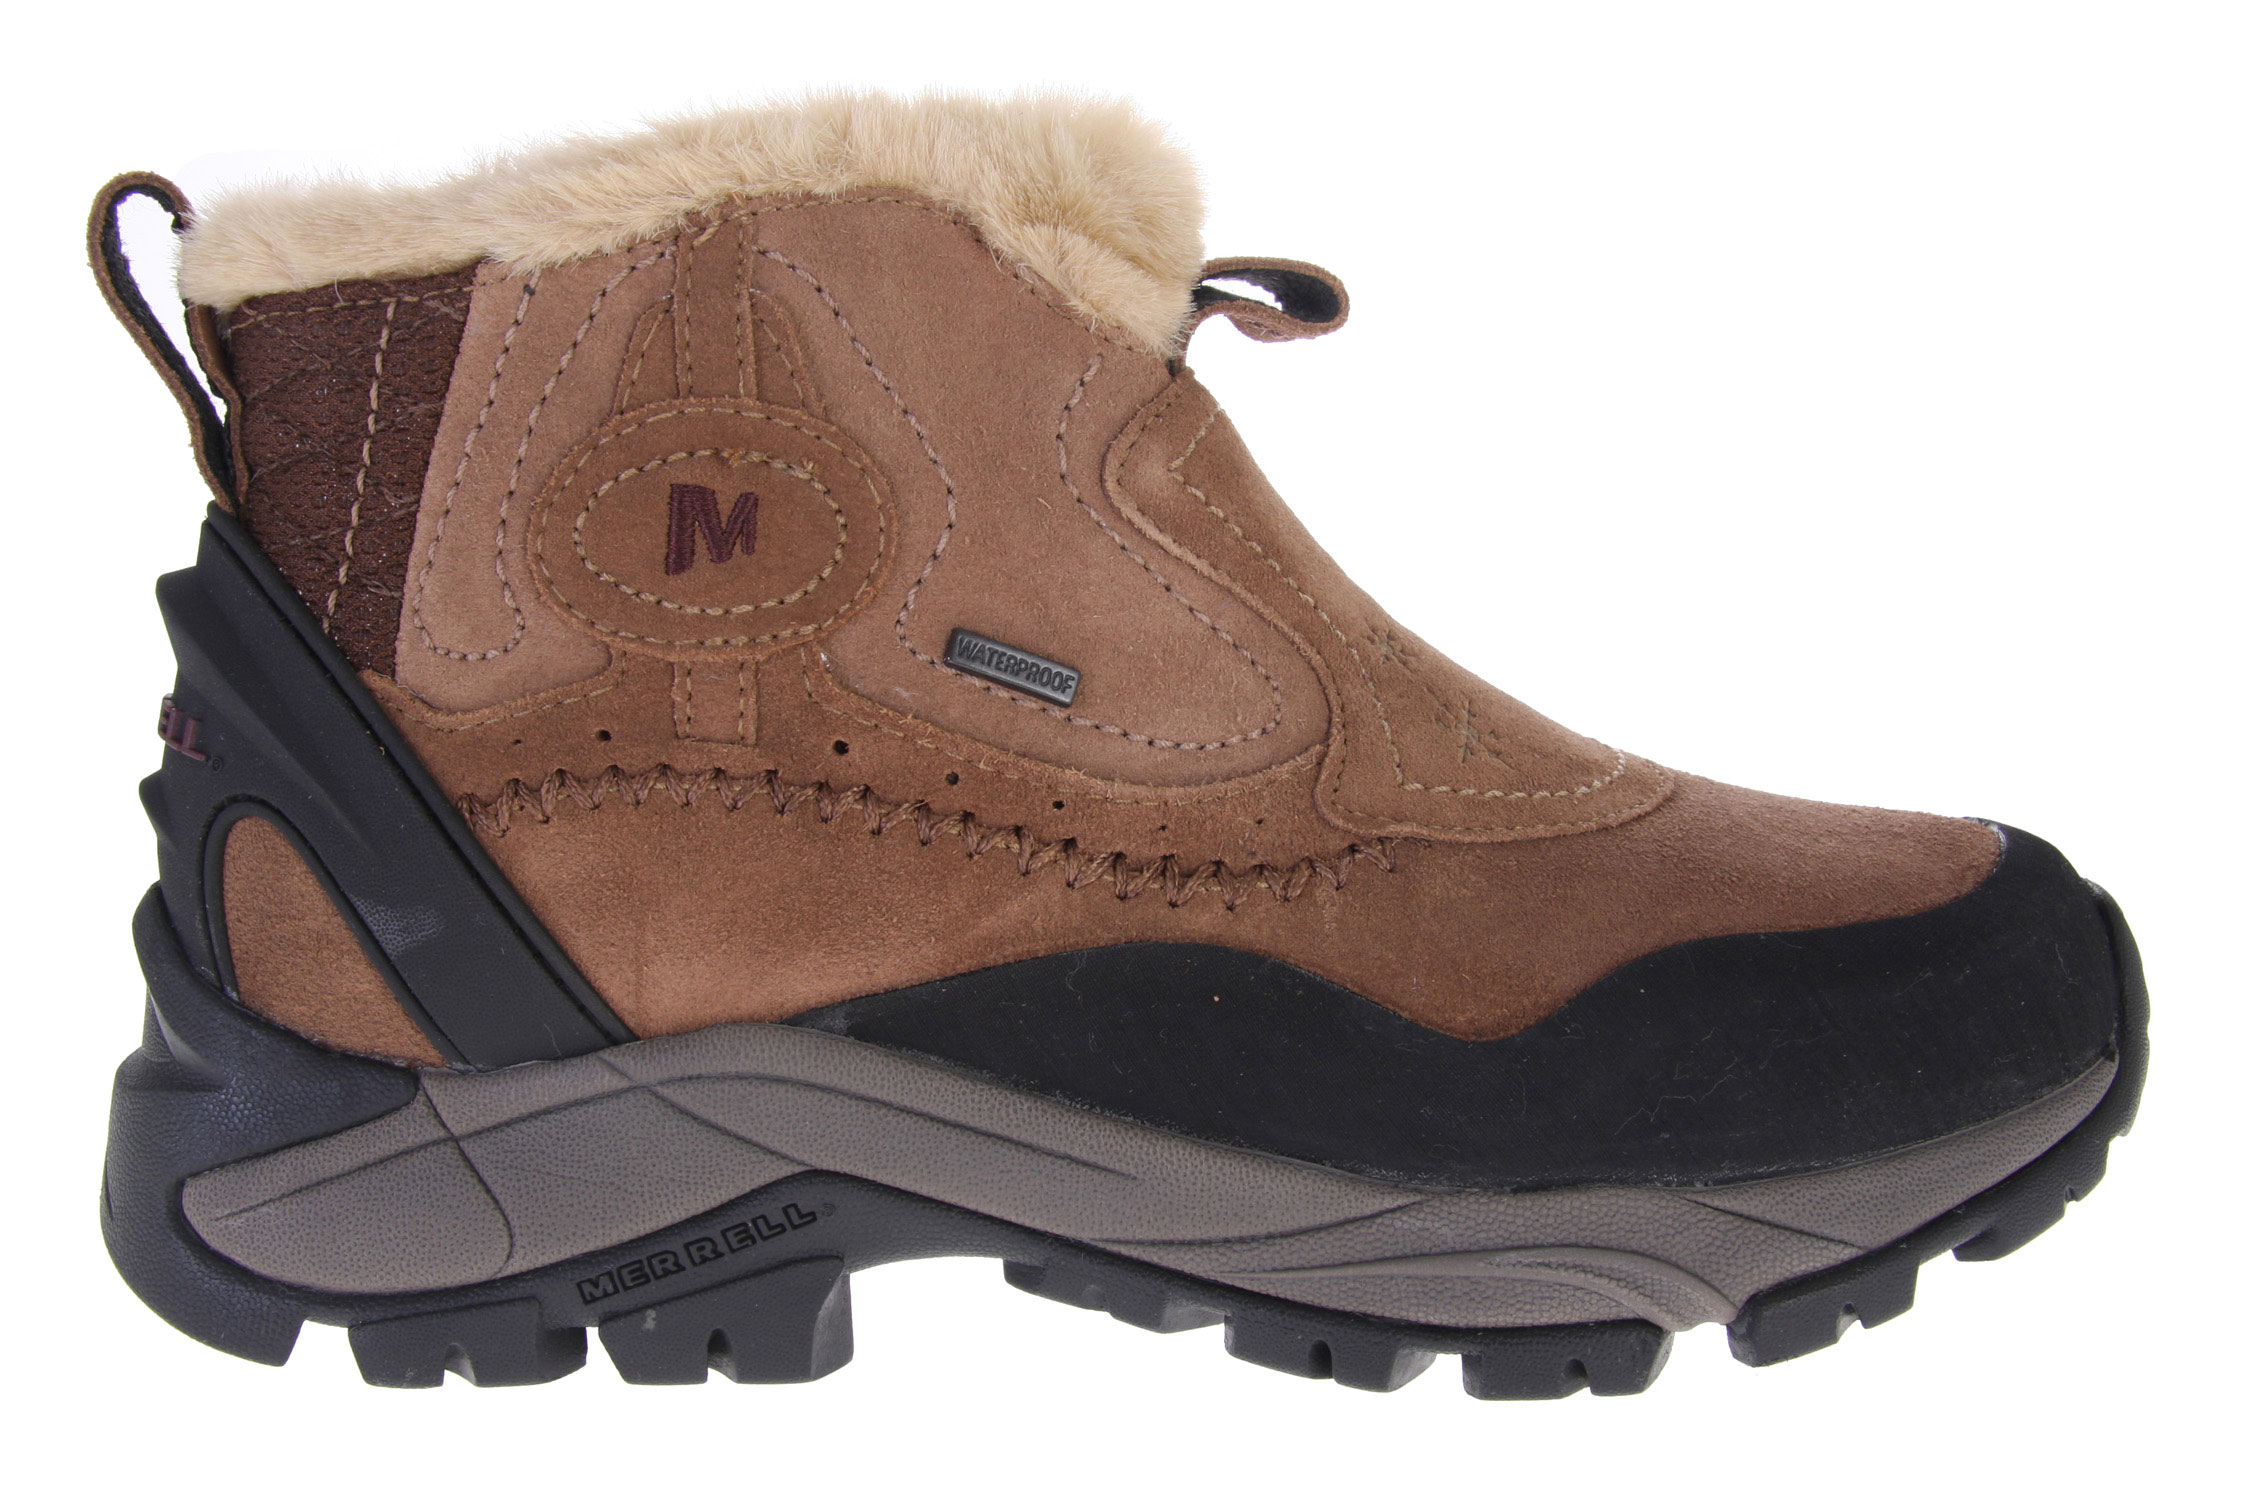 Camp and Hike Feminine and ferocious when it comes to keeping your feet warm and dry all day in the cold, the Sleet features a stealth inside zip to lock up its waterproof, insulated full-grain upper, packed with 200 grams of anti-microbial insulation to keep you feeling, smelling and looking sweet. Seize every step with Merrell's grippy Iceblock sole.Key Features of the Merrell Sleet 6 Waterproof Boots: Full grain leather upper Inside zip Waterproof membrane provides impermeable barrier 200g Thermal insulation with Aegis Antimicrobial solution Grade 1 Women's-specific Nylon Insole for trail hiking QForm Comfort combines women's specific stride-sequenced cushioning with Merrell Air Cushion Merrell Iceblock Sole/Sticky Rubber Comfort Range to -25F/-32C - $68.95